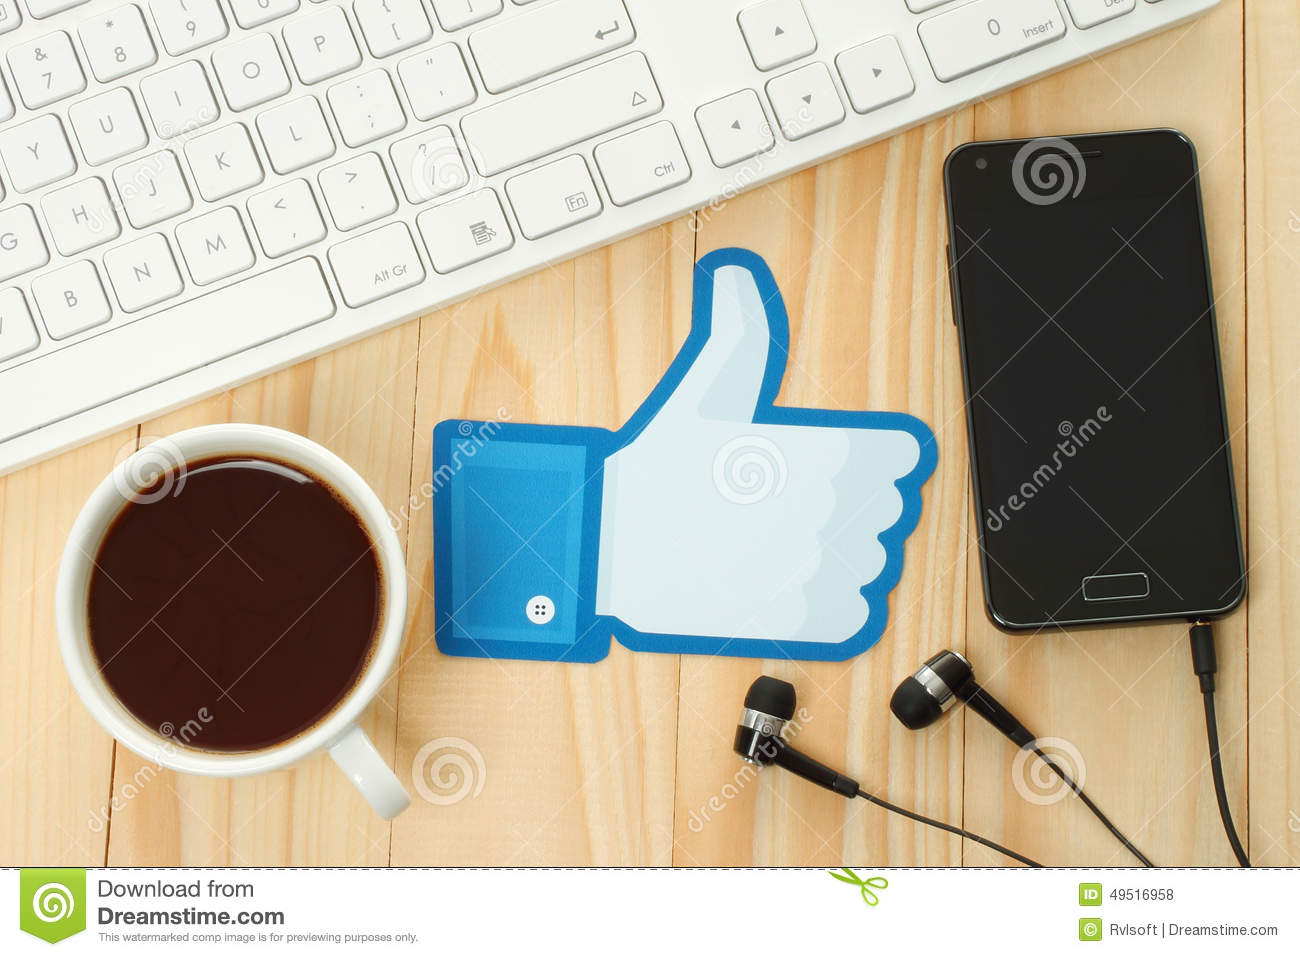 Facebook thumbs up sign printed on paper and placed on wooden background